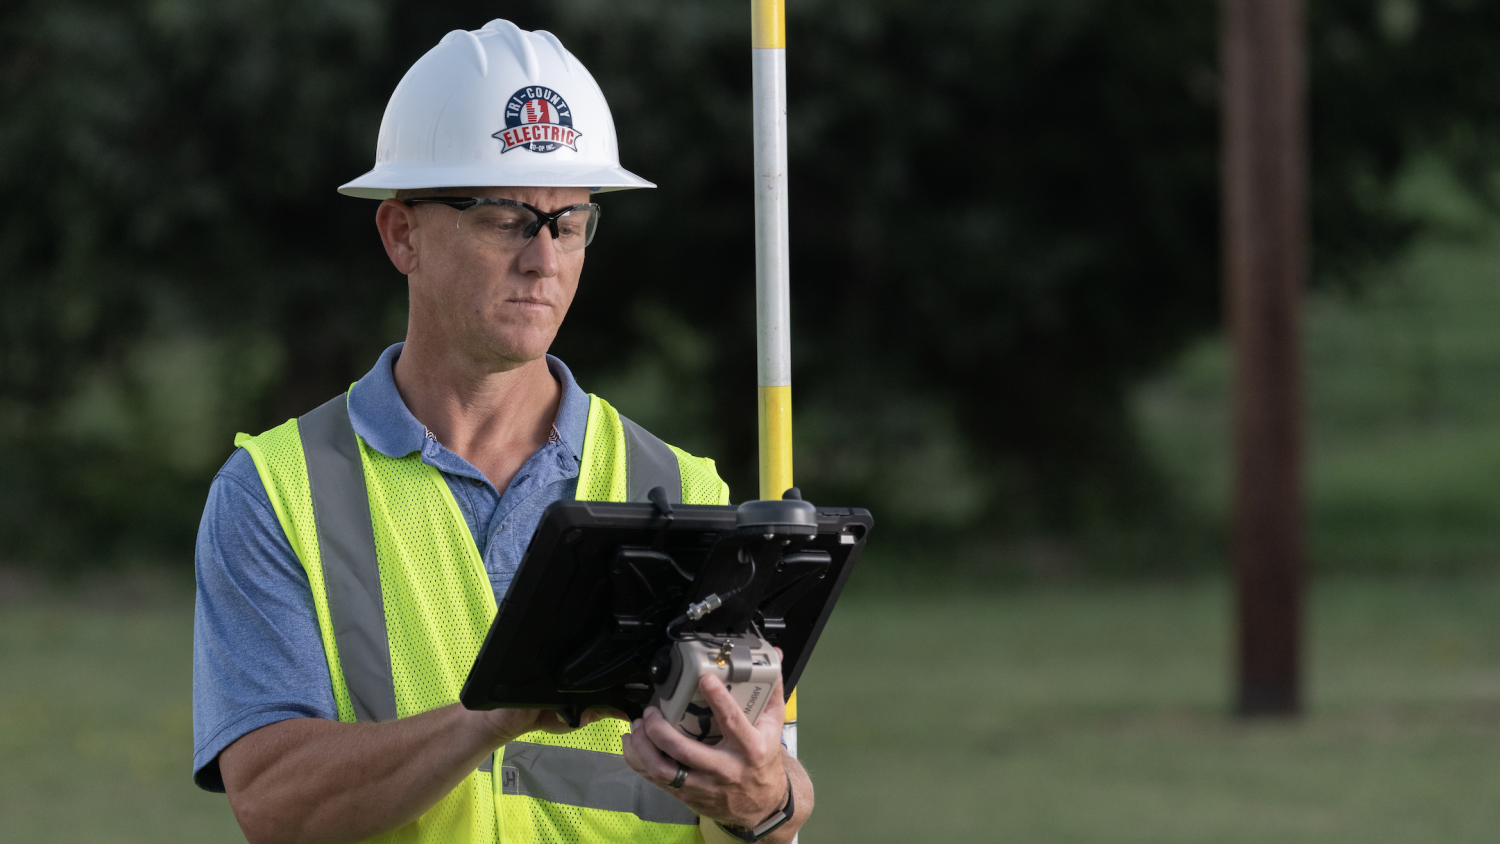 A Tri-County Electric Cooperative employee checks his GIS utility data in Futura's FieldPro app while out on a staking project in the field